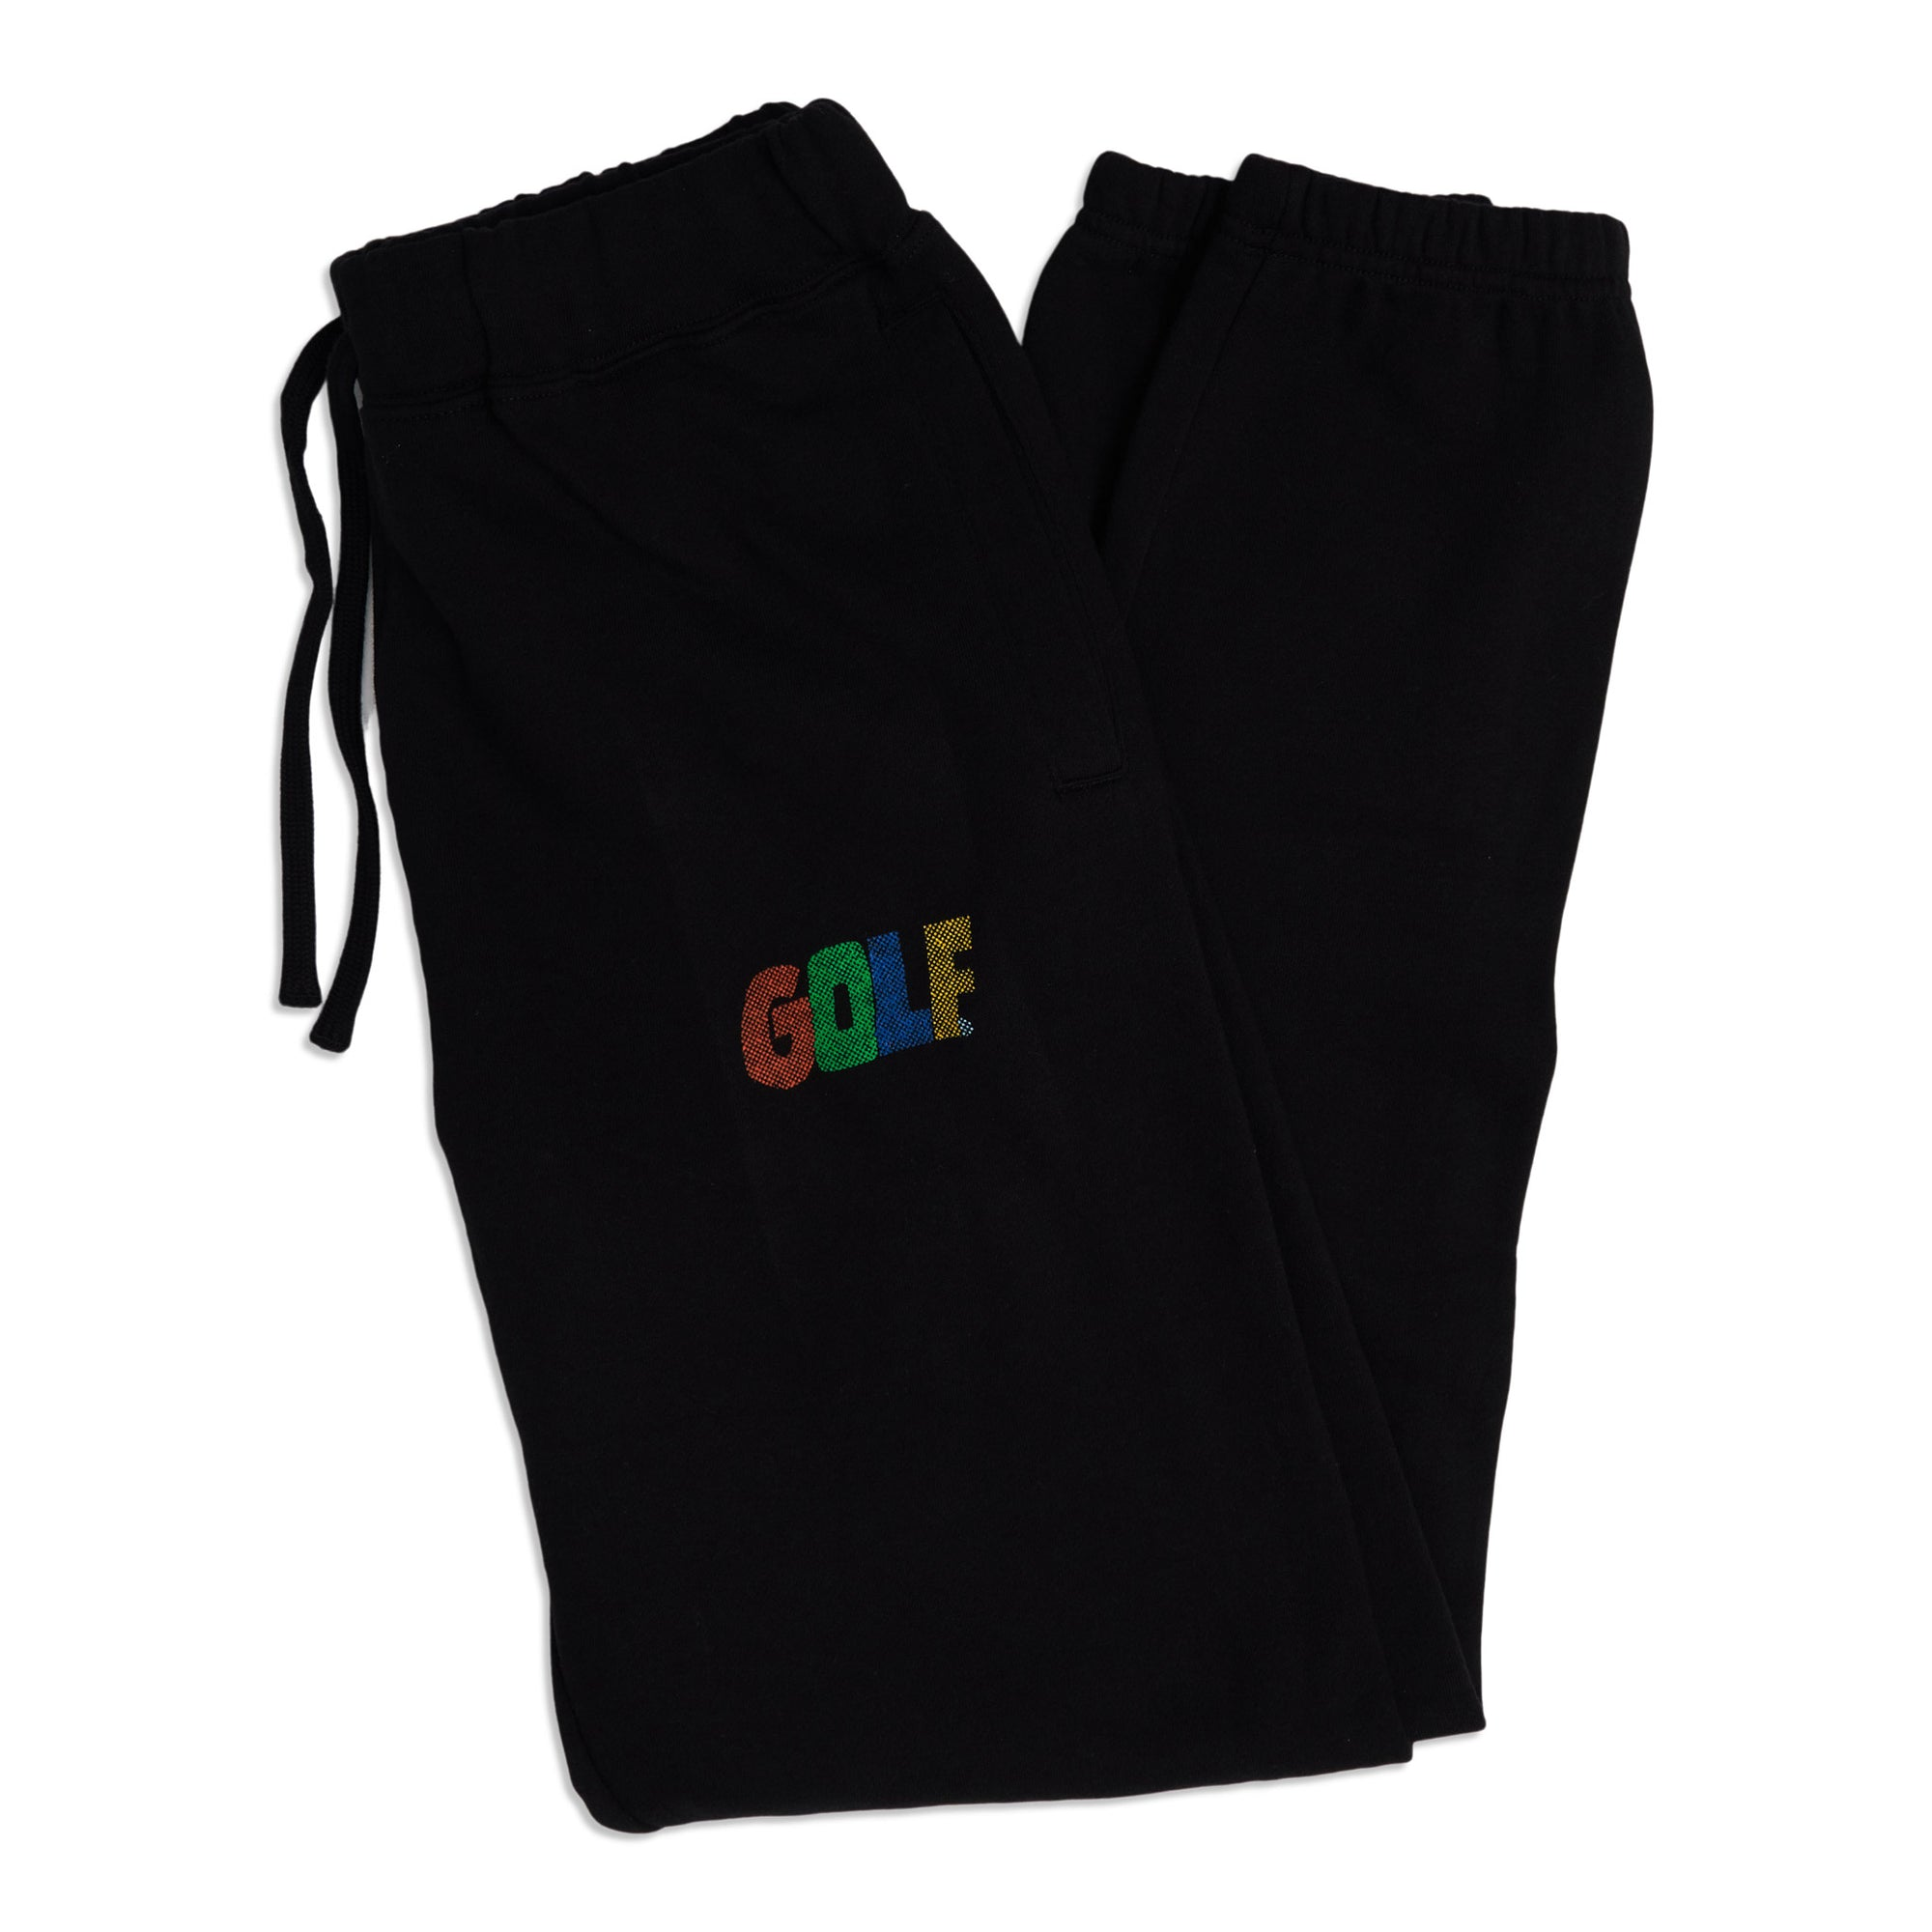 birds-of-condor-golf-sweat-track-pants-black-front